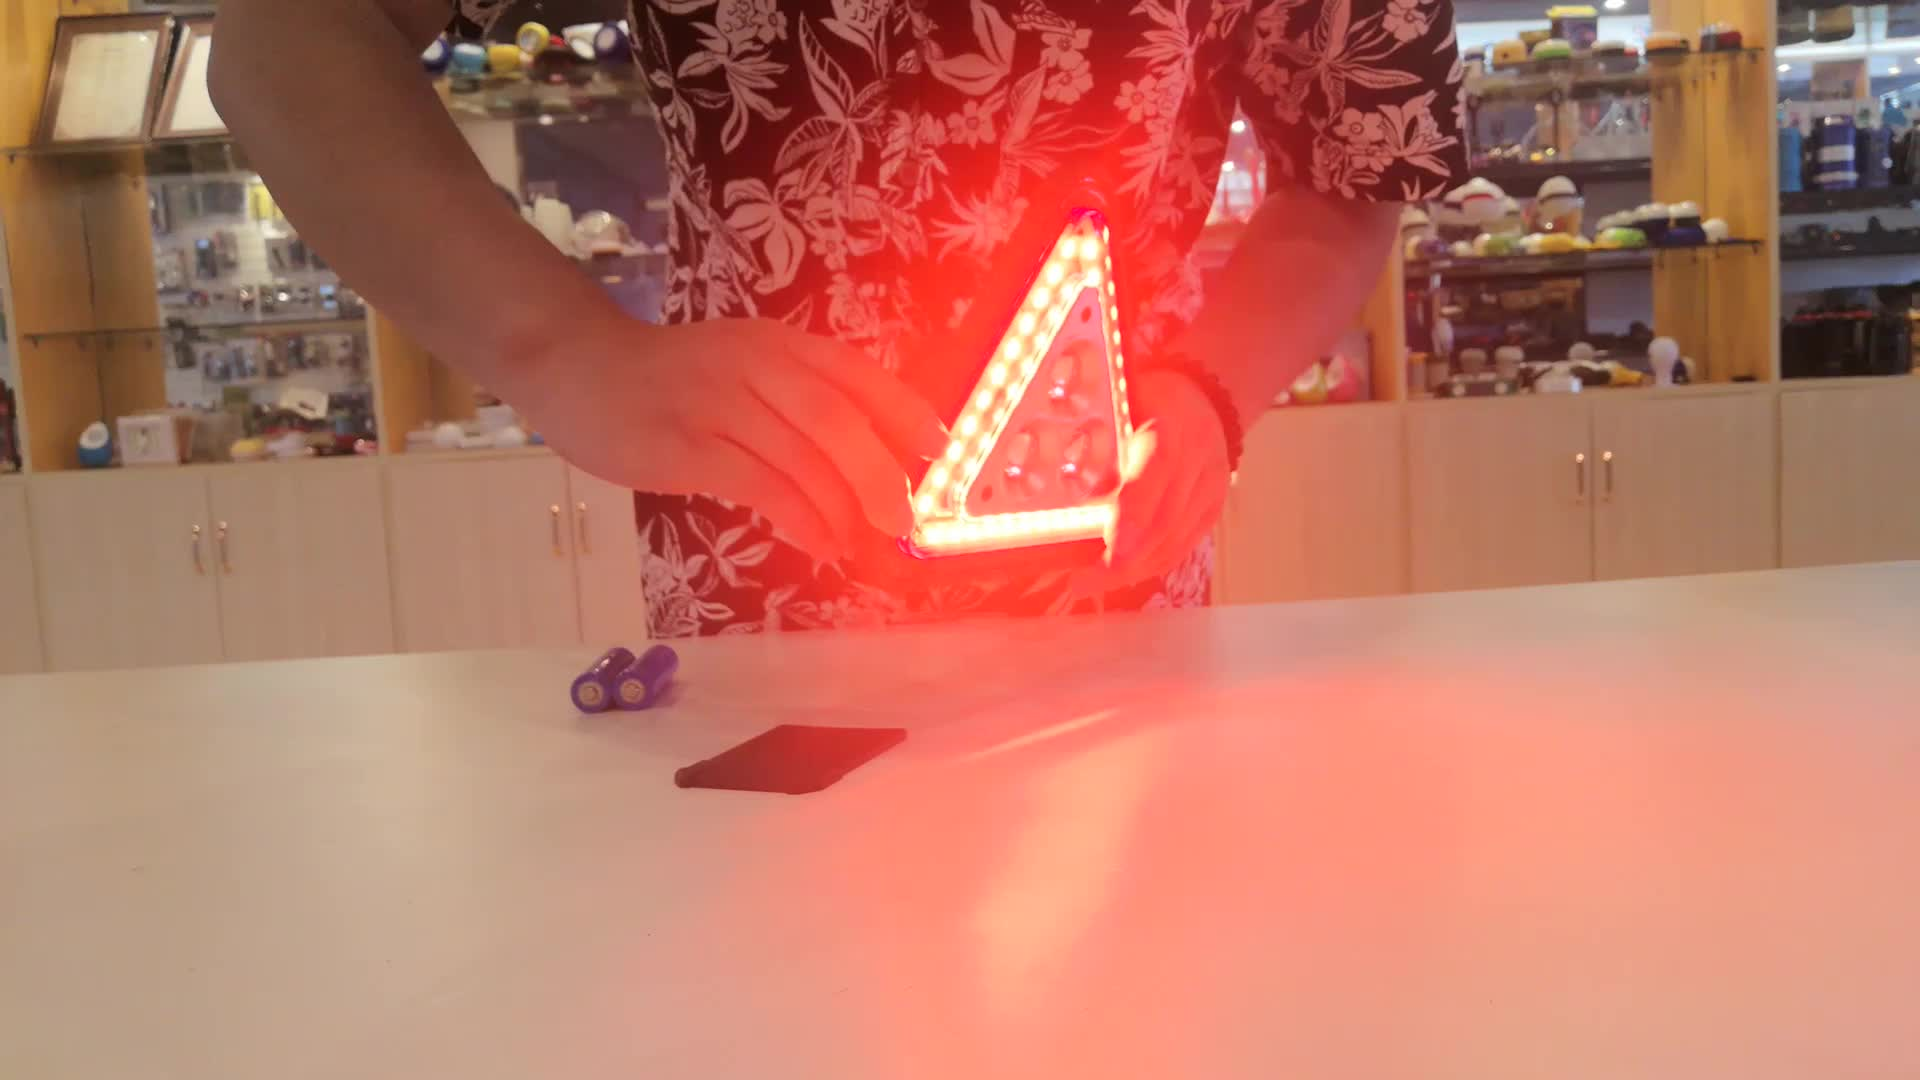 Road Flare Emergency 33 SMD Triangle Warning Lamp 5W COB Worklight 18650 USB Rechargeable 450lm LED Work Light with Input Output